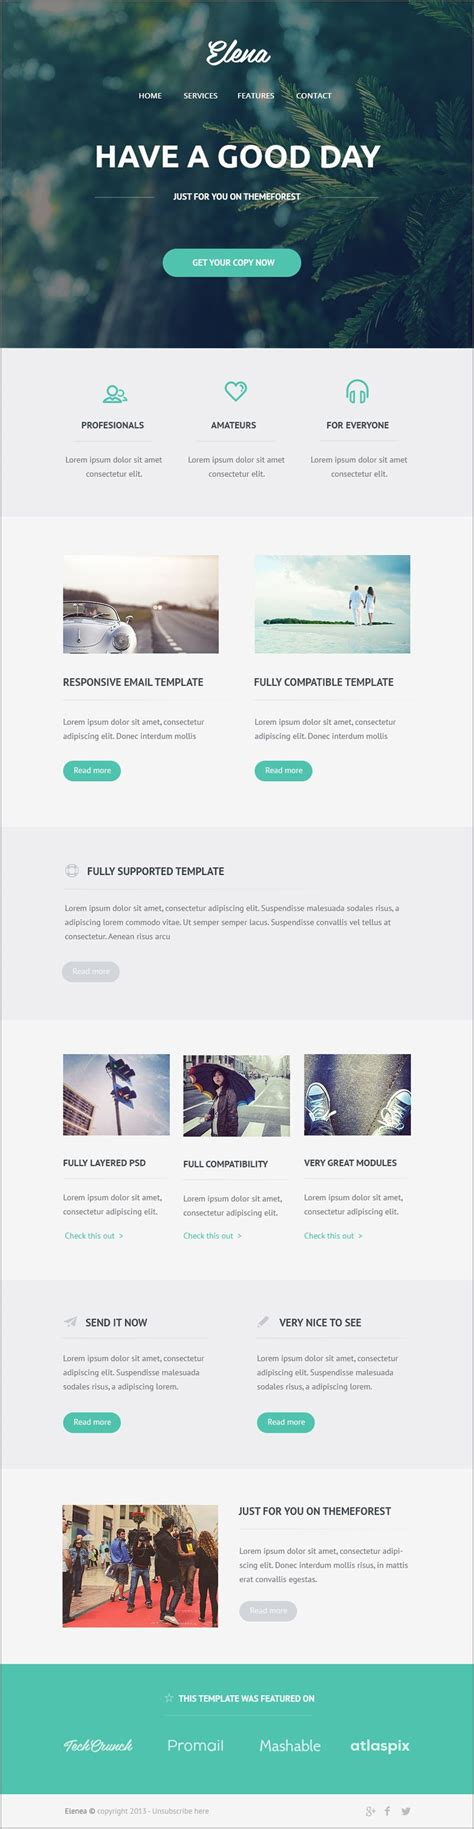 desarrollo web templat free email newsletter templates psd 187 css author design